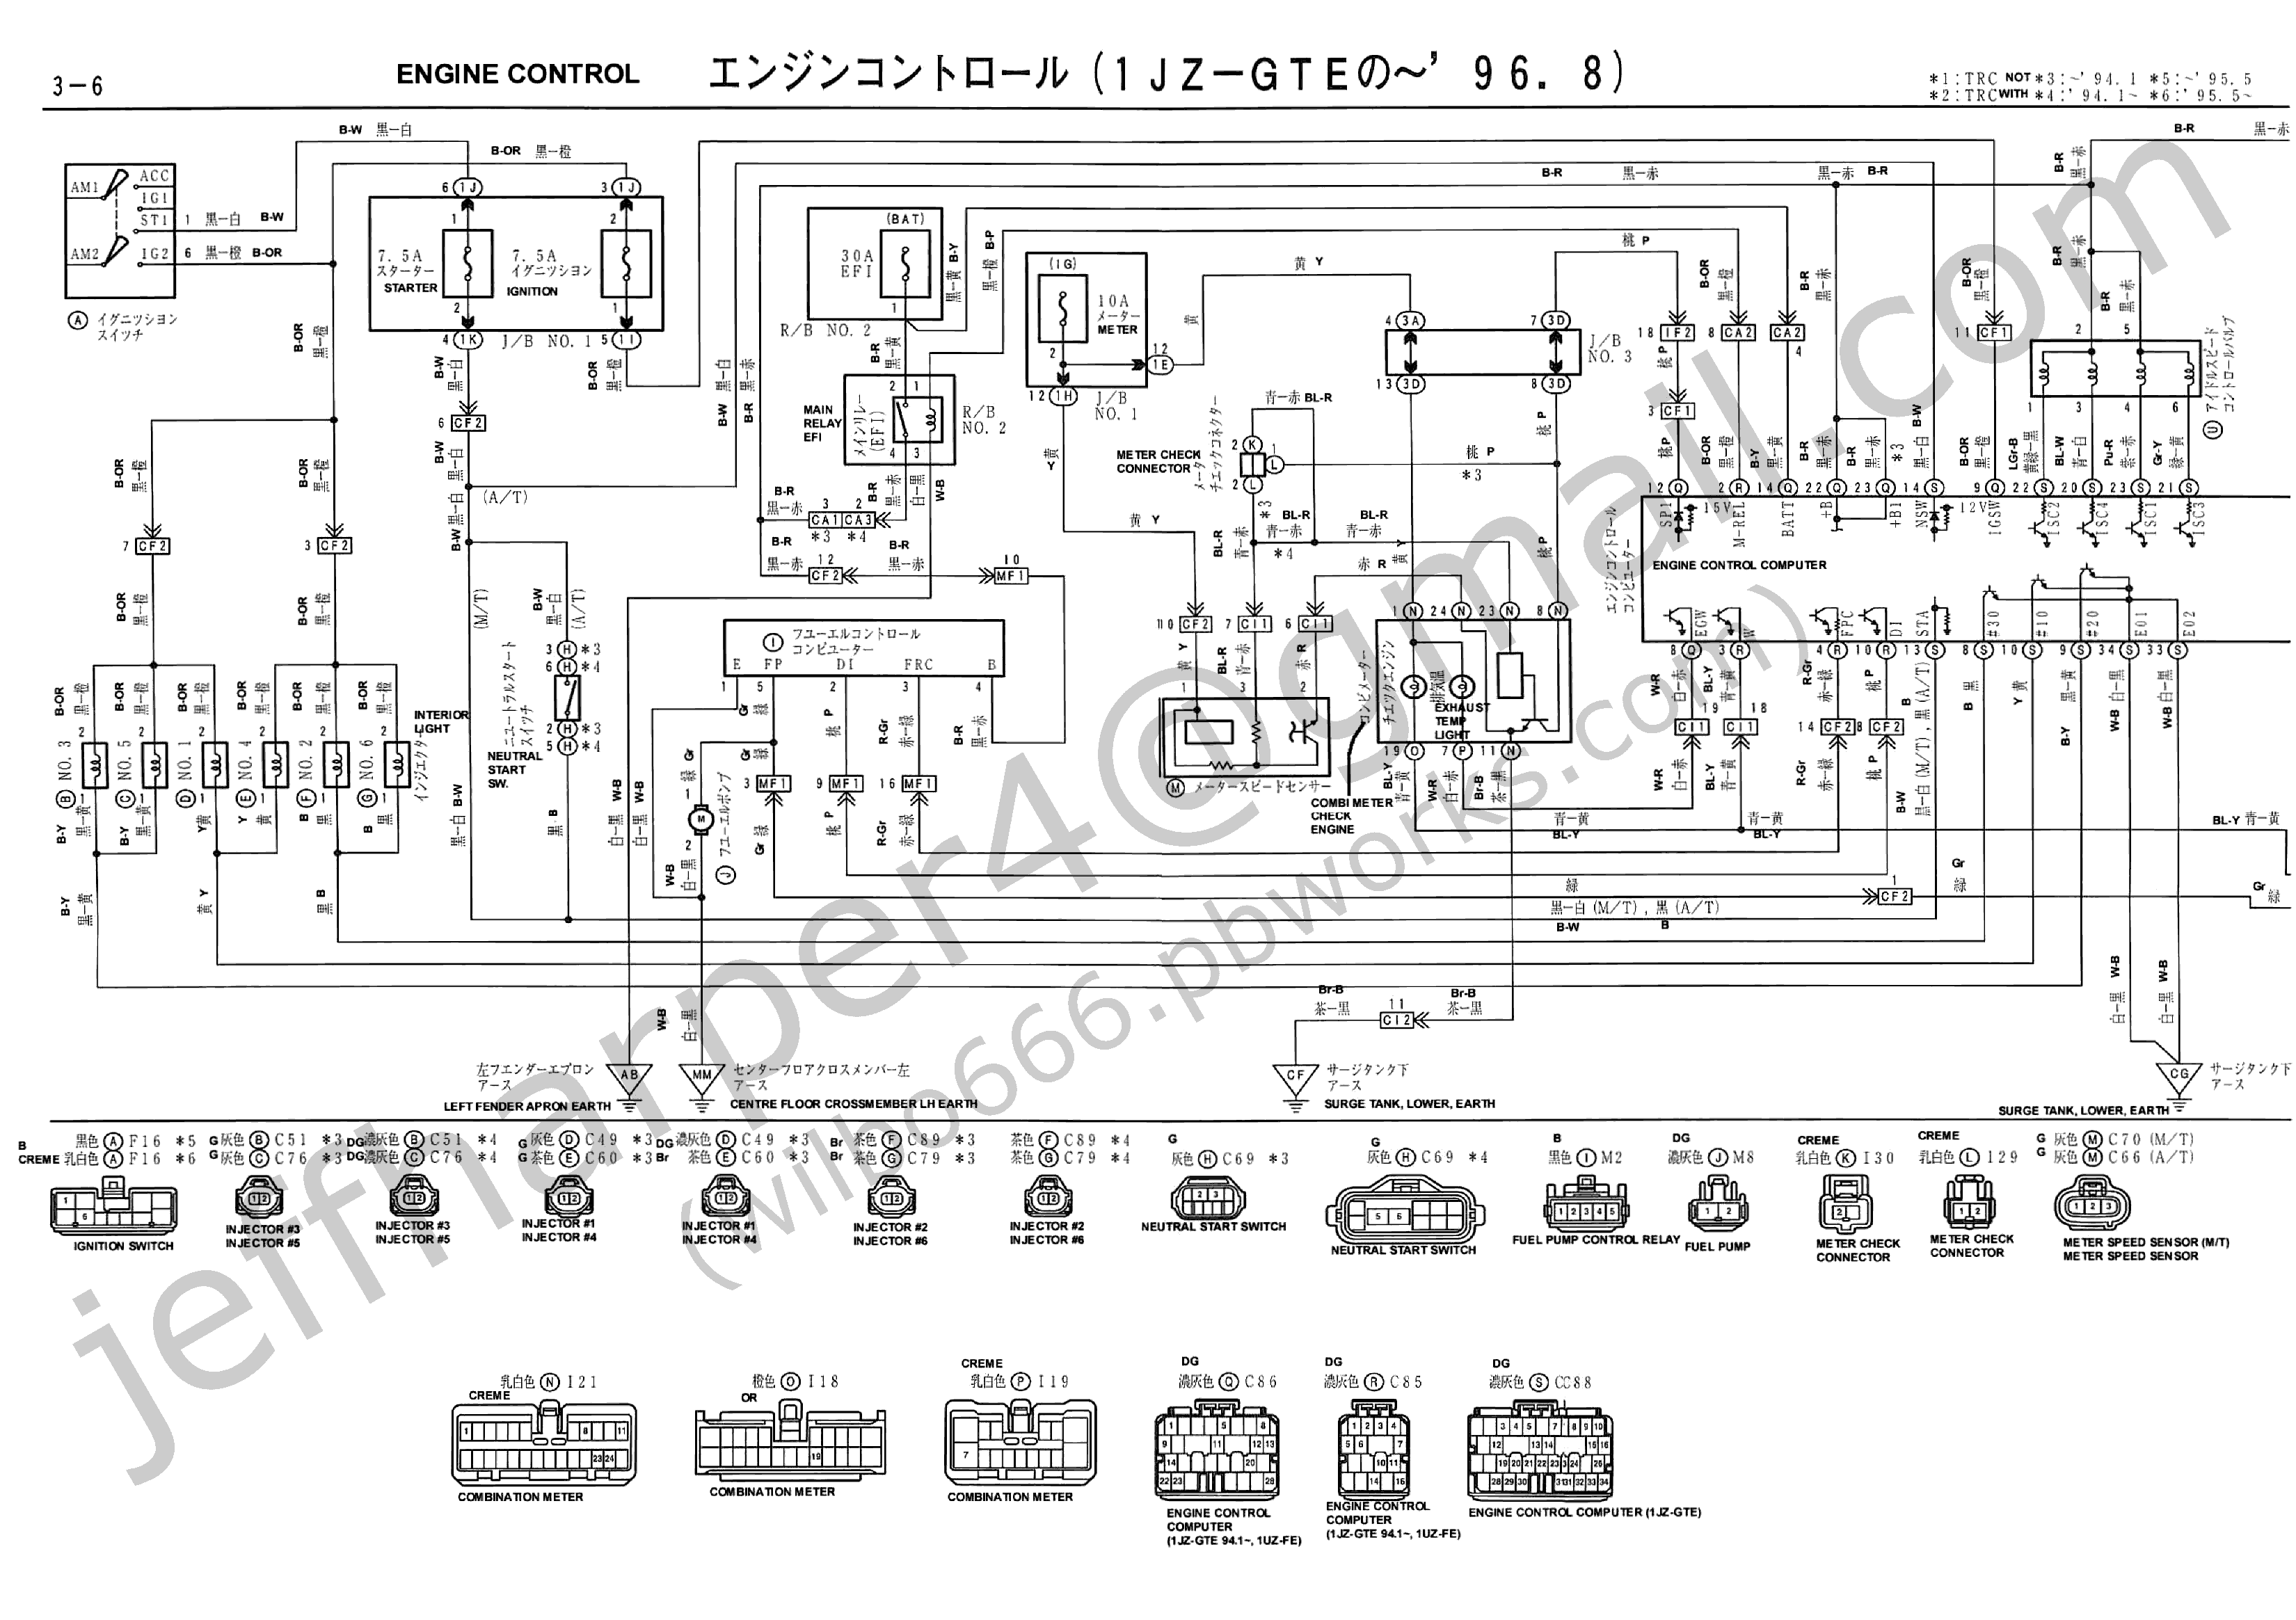 1jz Injector Wiring Smart Wiring Diagrams \u2022 1998 Subaru Forester Injector  Wiring Fuel Injector Wiring Harness Diagram